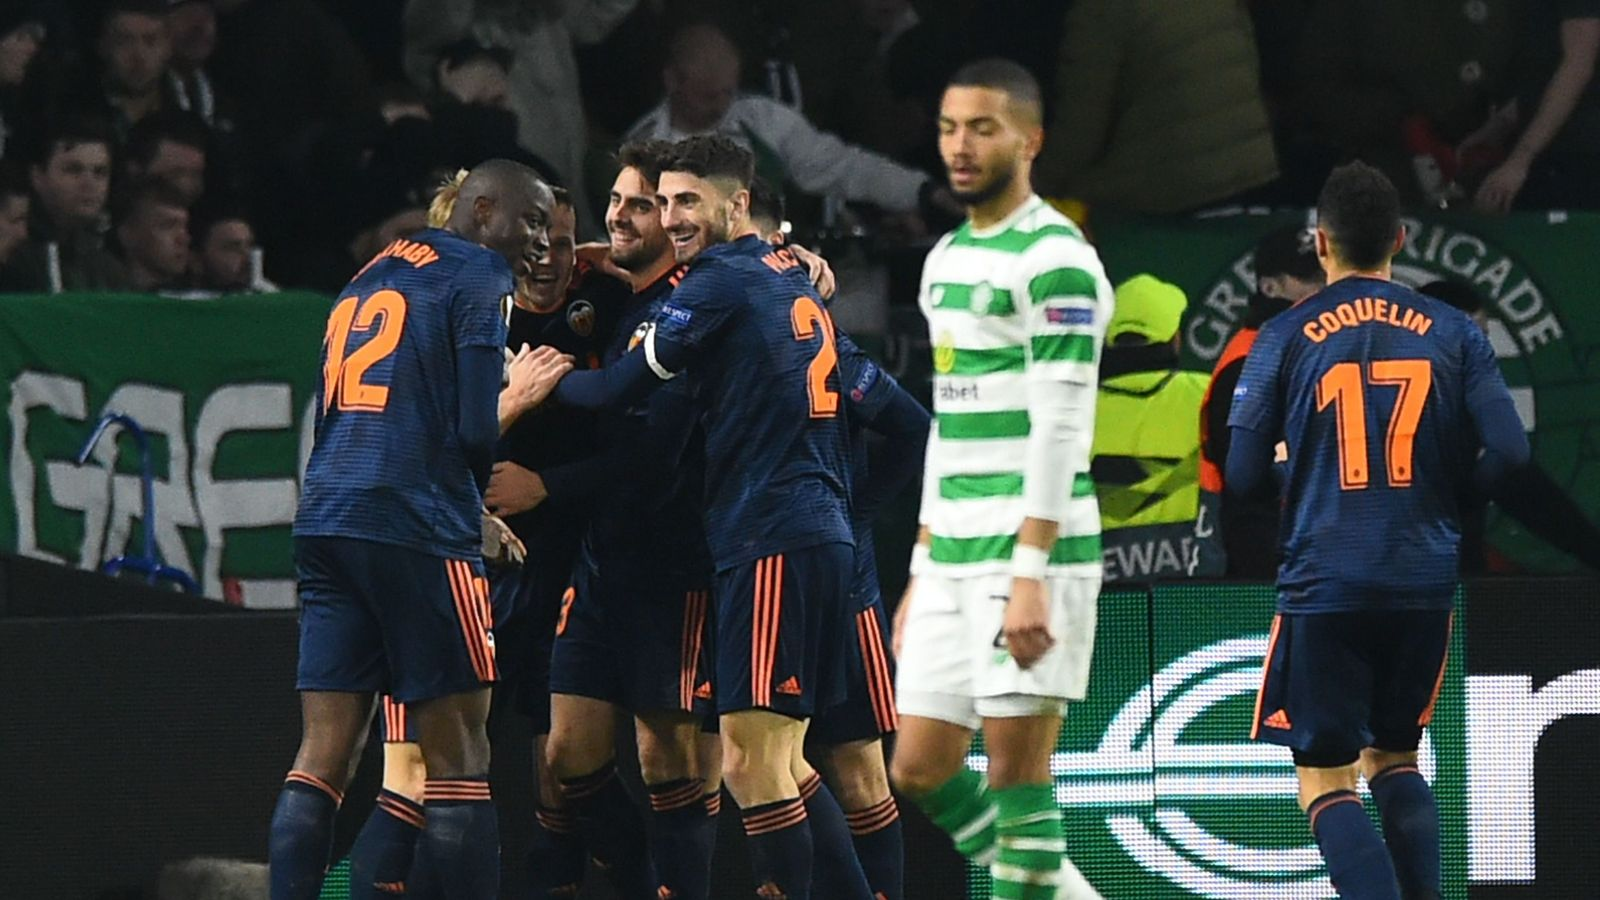 Celtic 0 - 2 Valencia - Match Report & Highlights